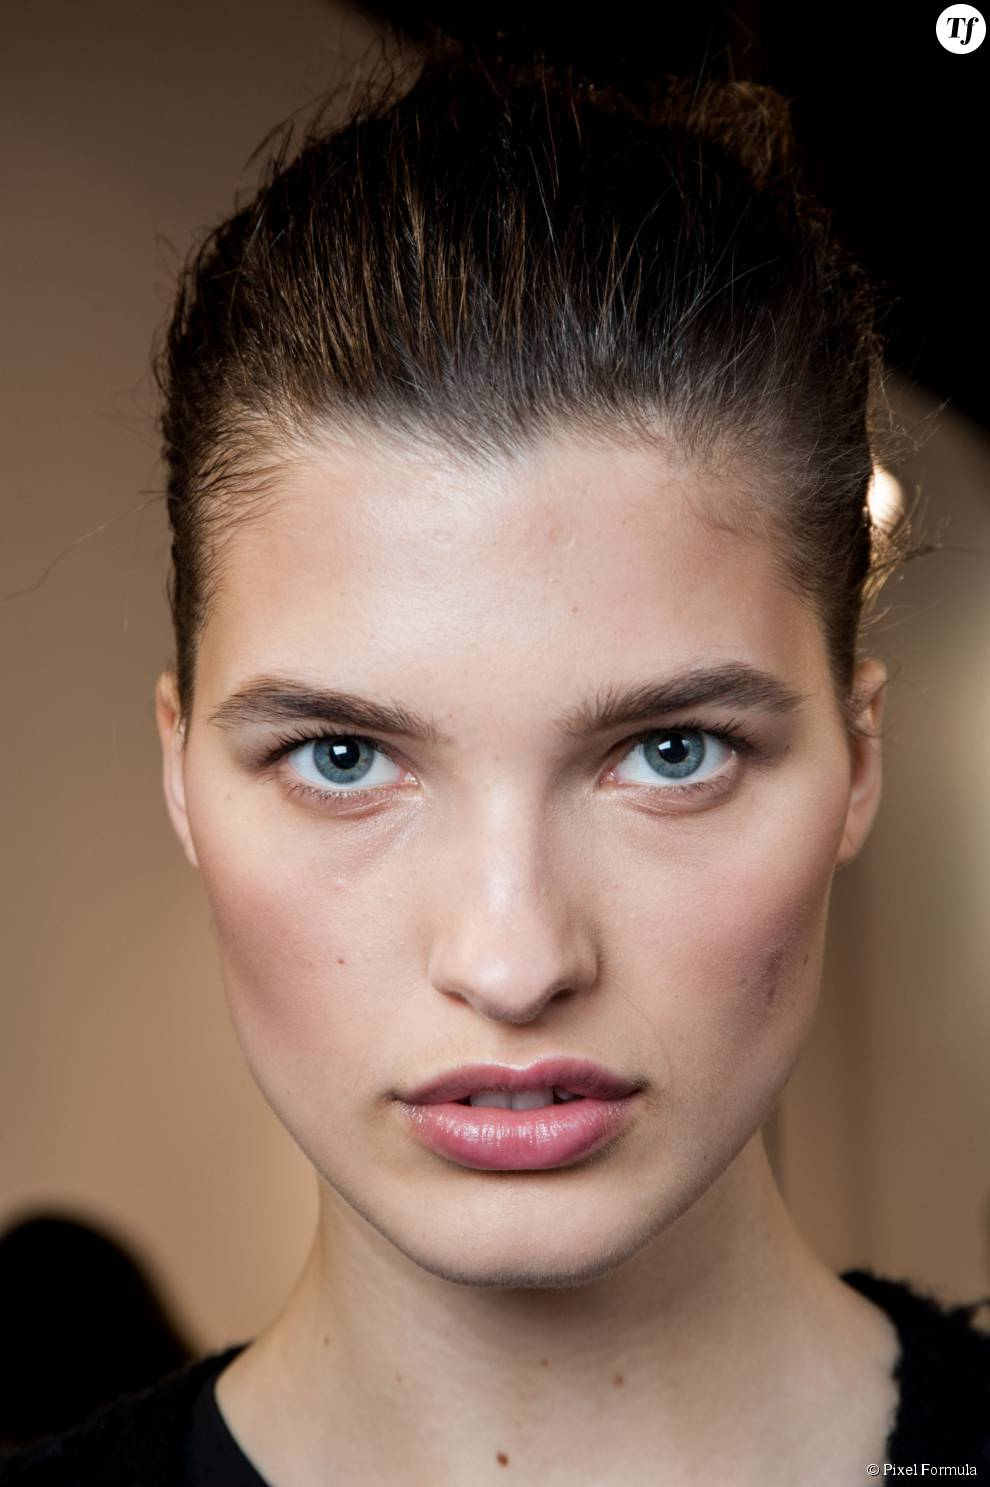 Maquillage nude chez Isabel Marant automne-hiver 2015-2016.